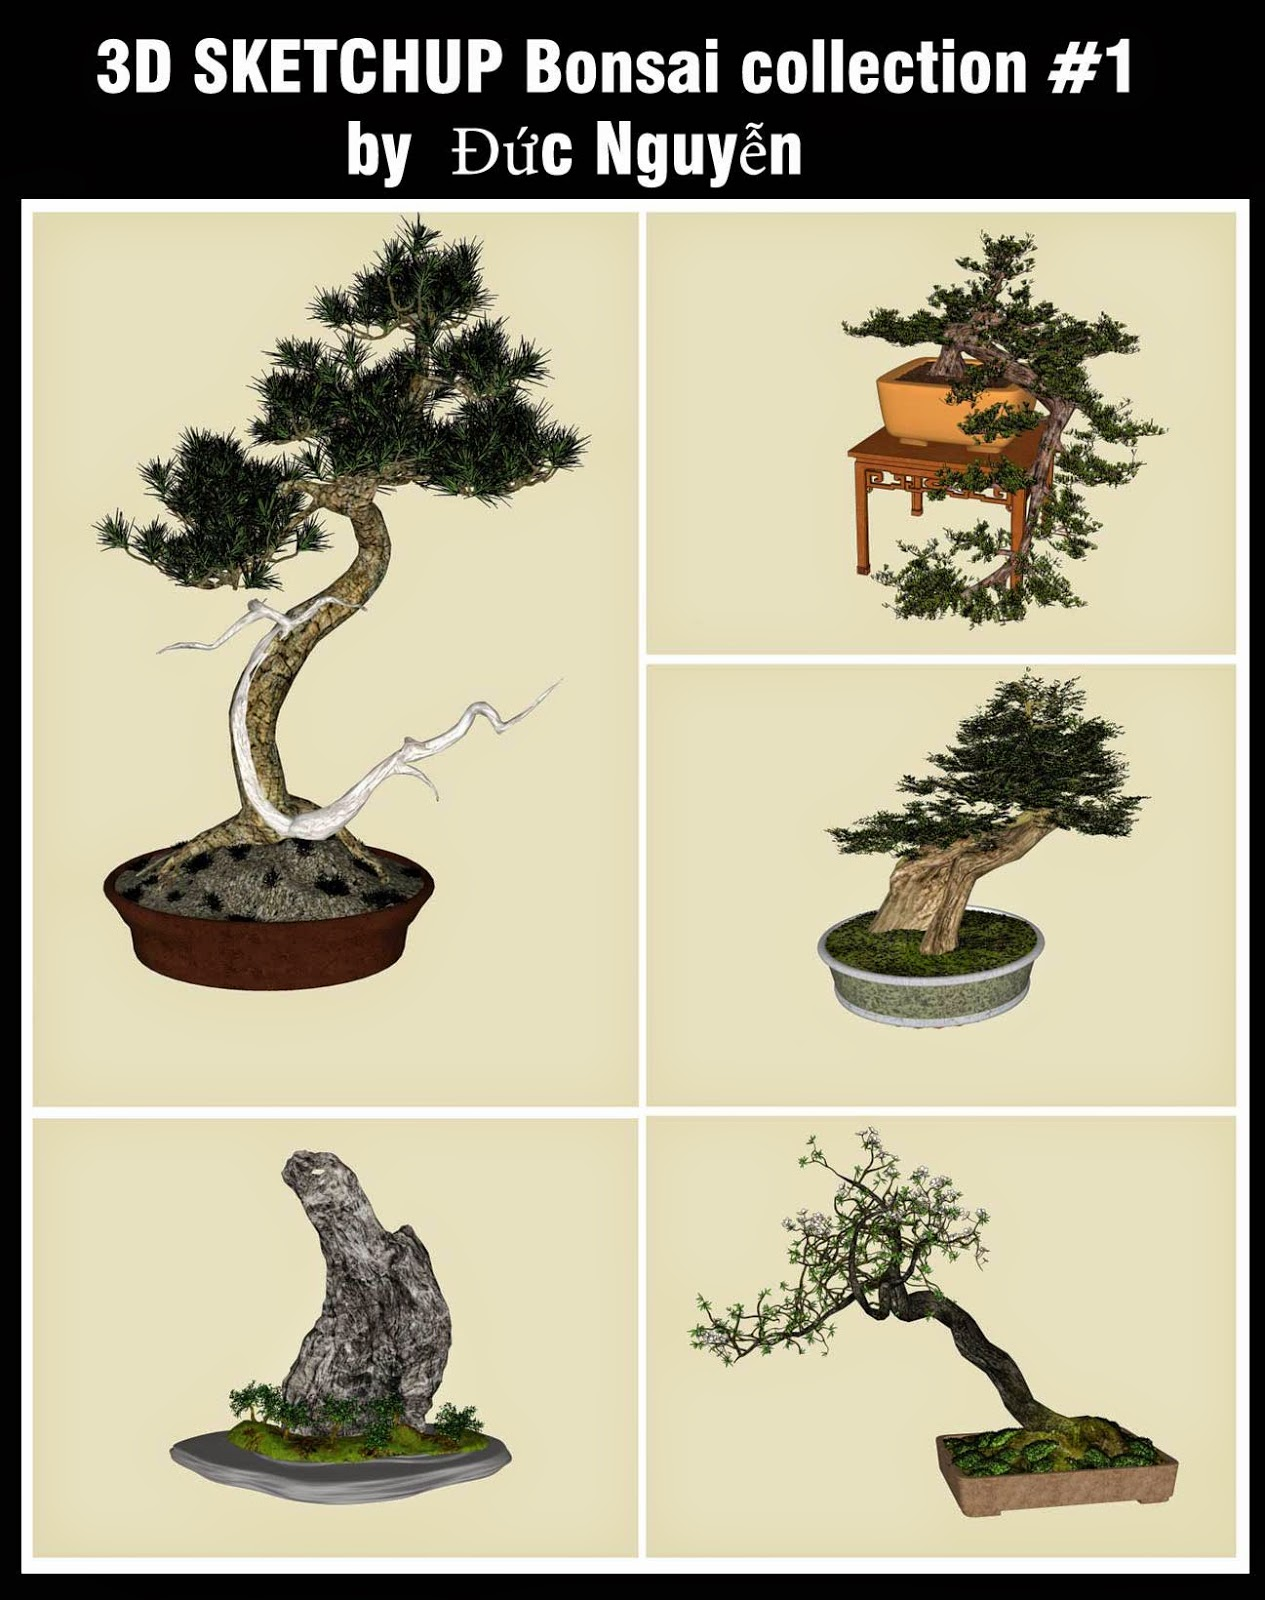 Tugas Kuliah Ku Sketchup Free 3d Resources Bonsai Collection 1